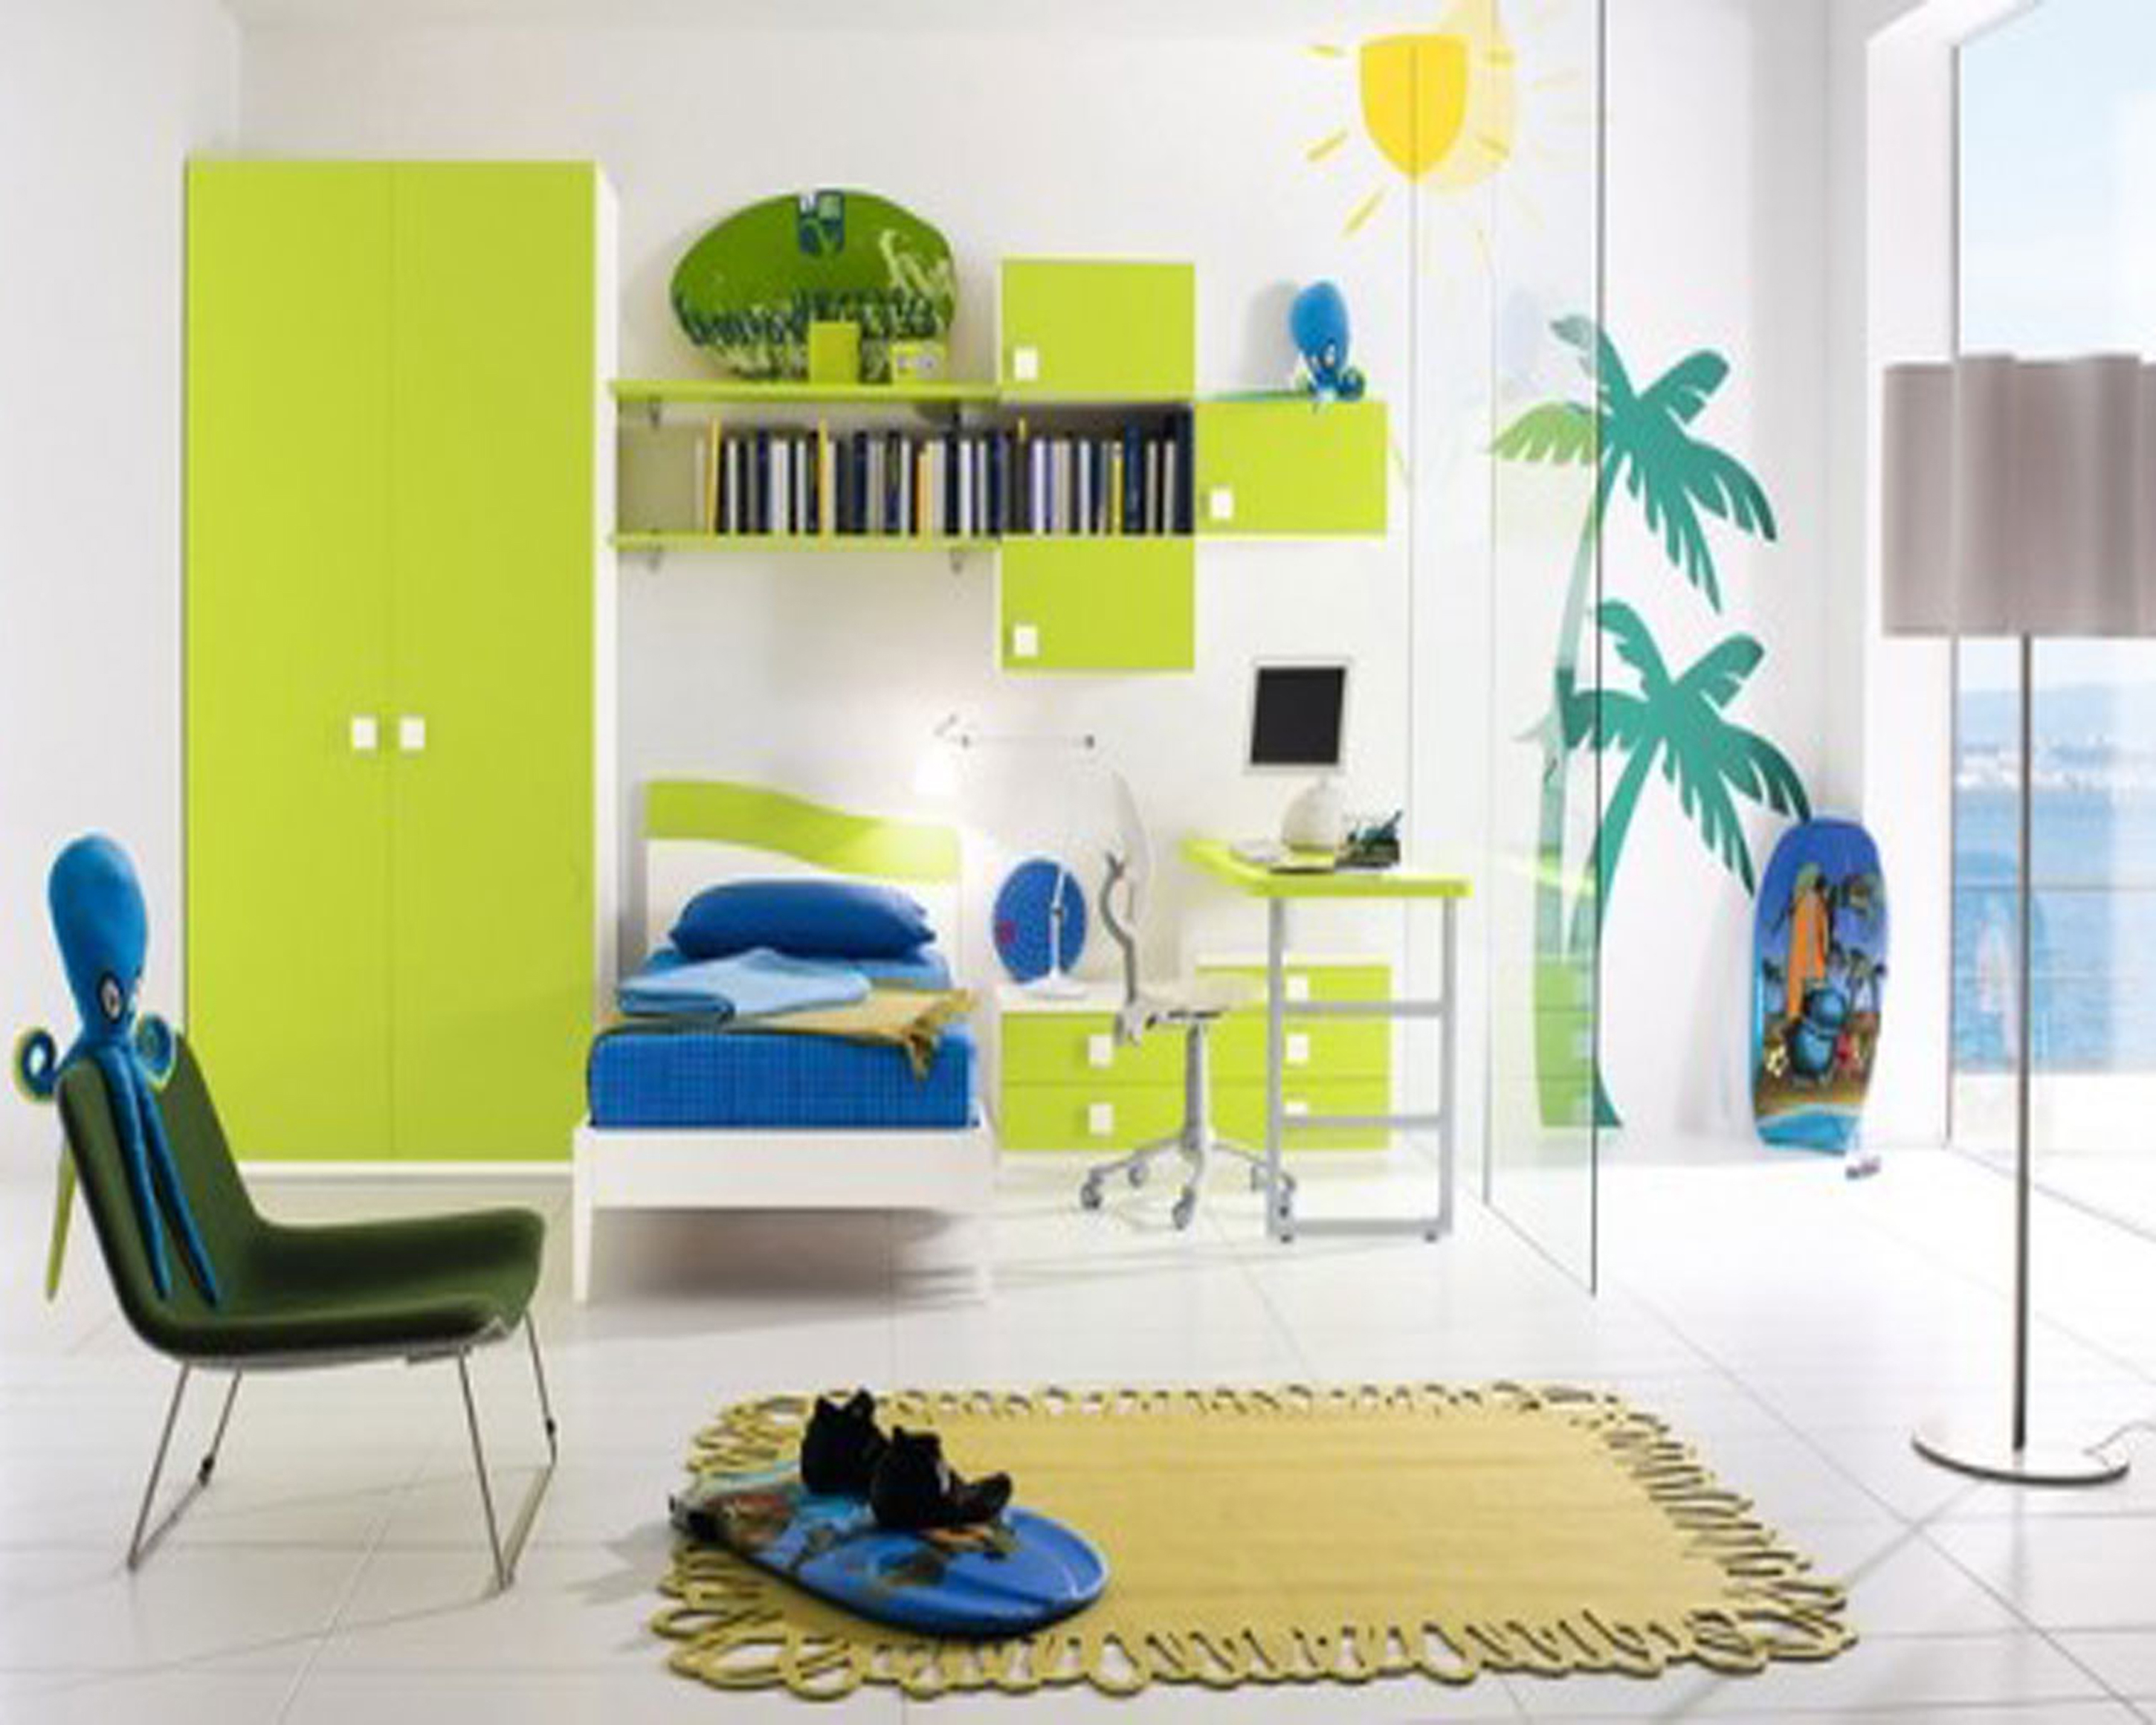 Kids Bedroom Cool Beach Themed Boys Bedroom Decoration Idea With White Wall With Green Coconut Tree Motive Dark Blue Bed And Light Green Wardrobe Impressive Boys Bedroom Decoration Idea (View 23 of 28)